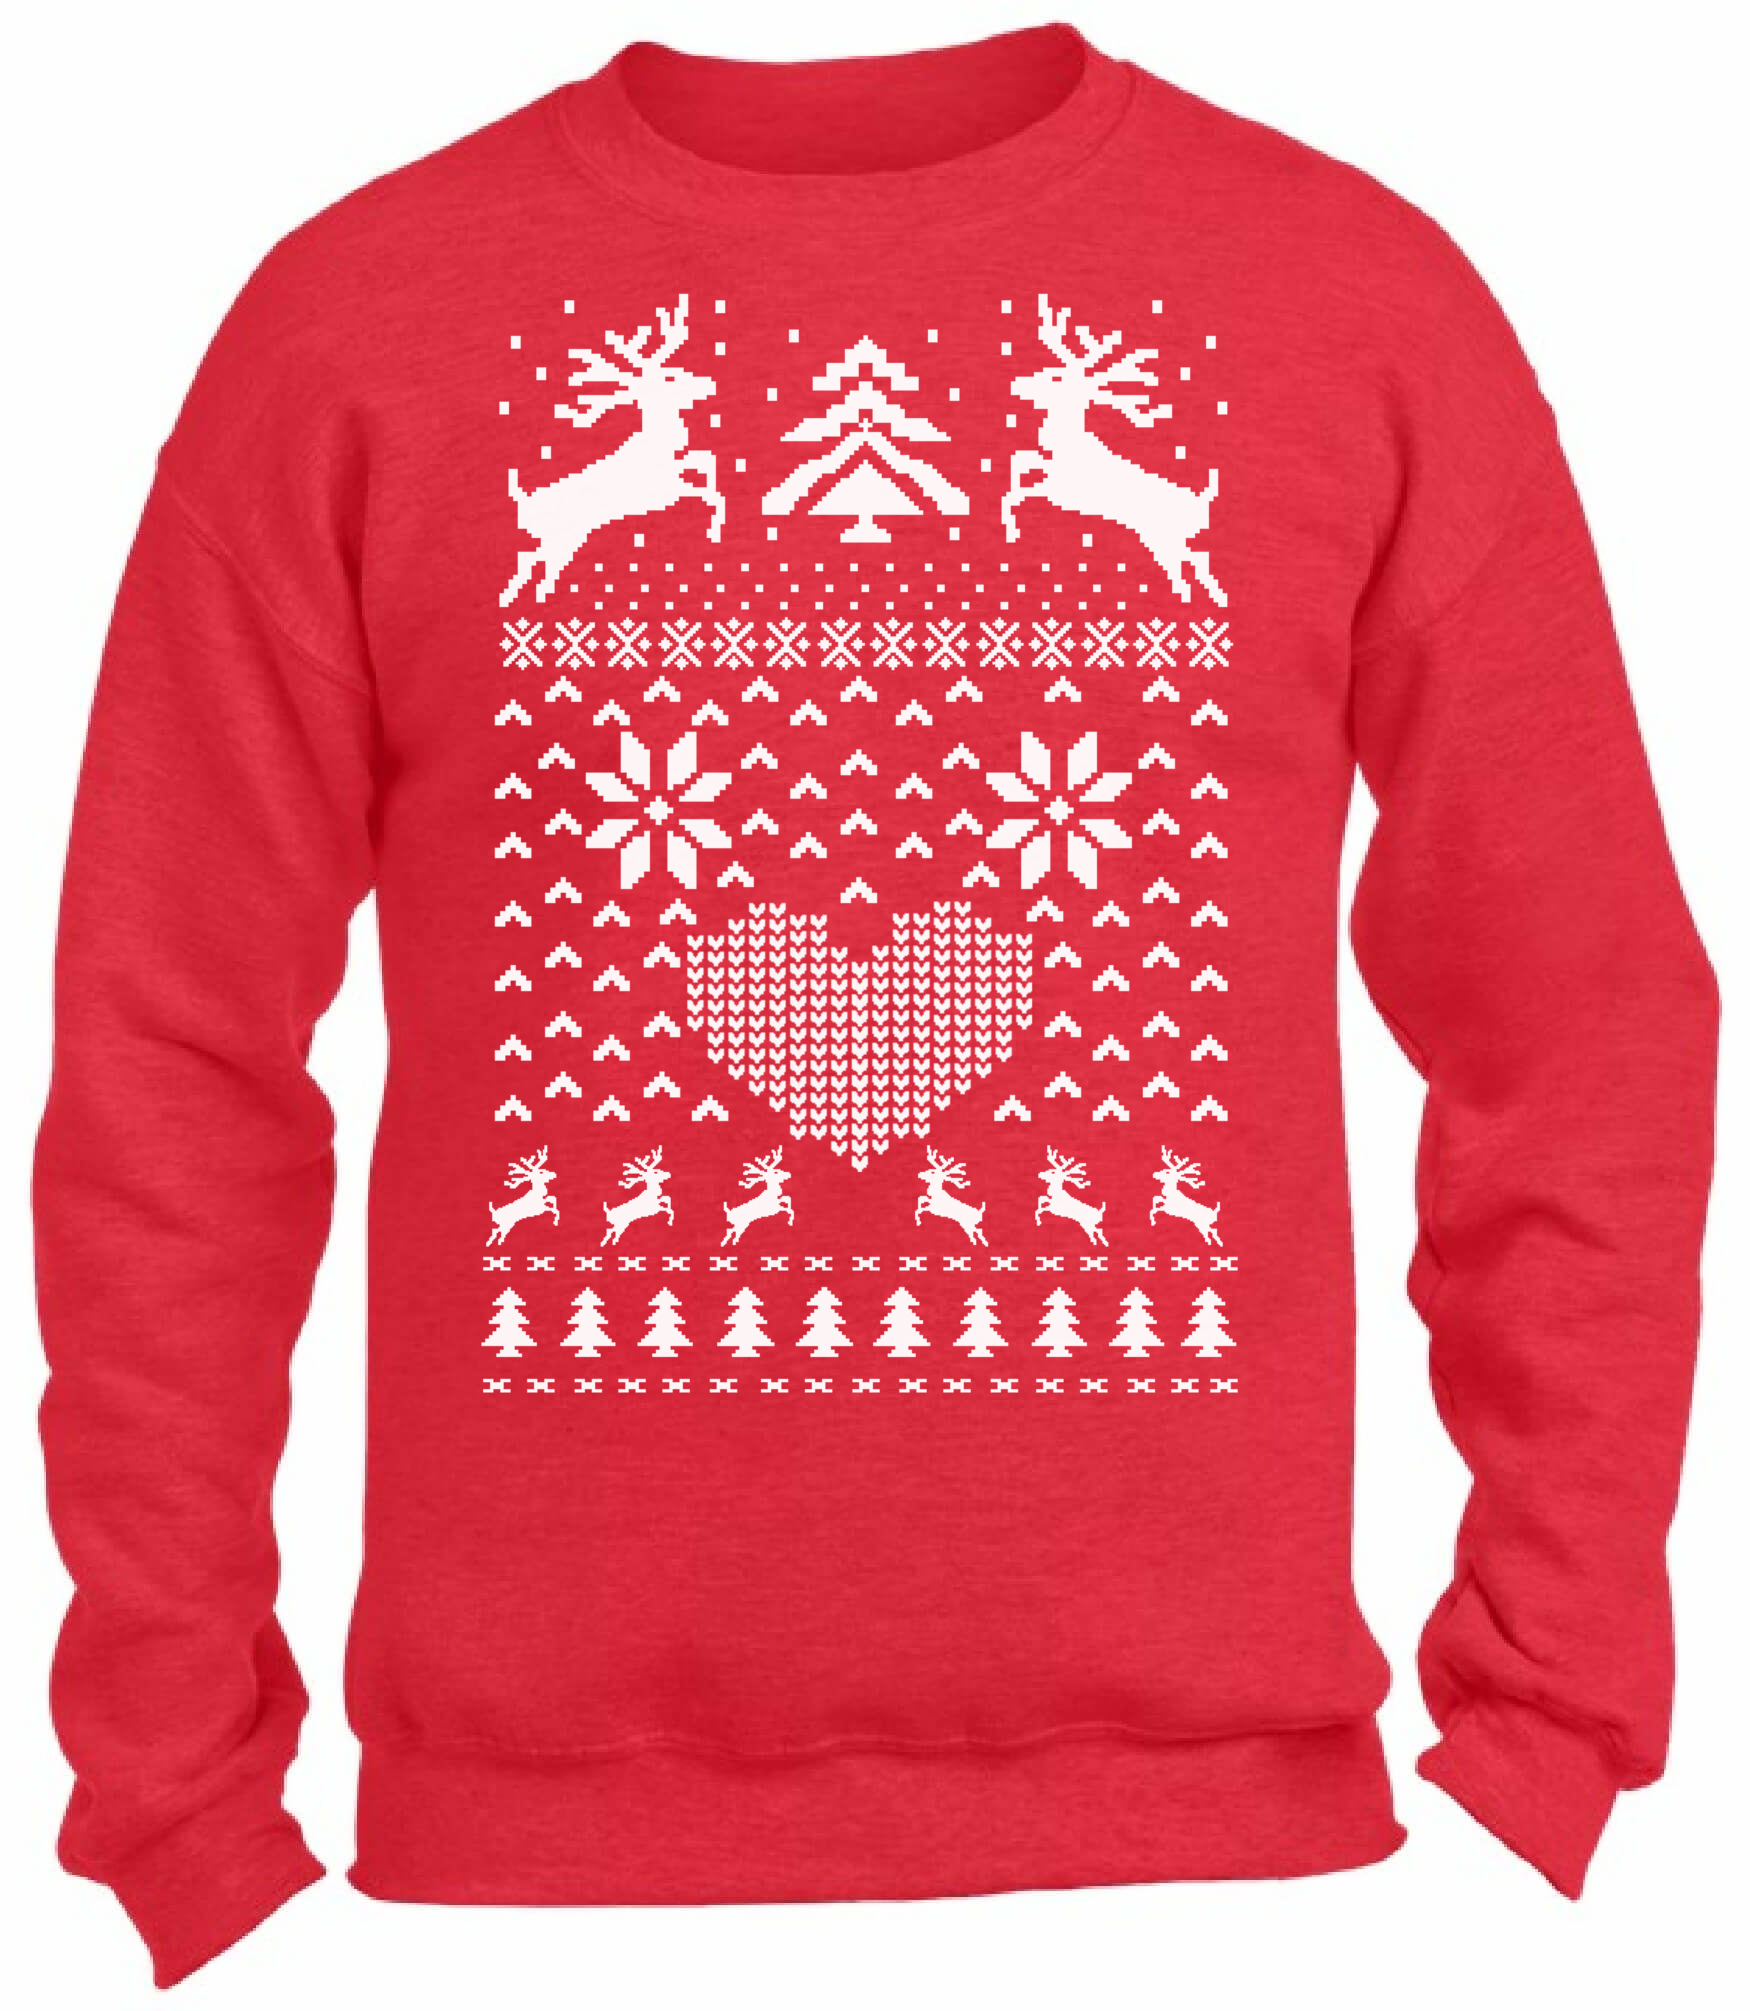 picture 5 of 5 - Reindeer Christmas Sweater